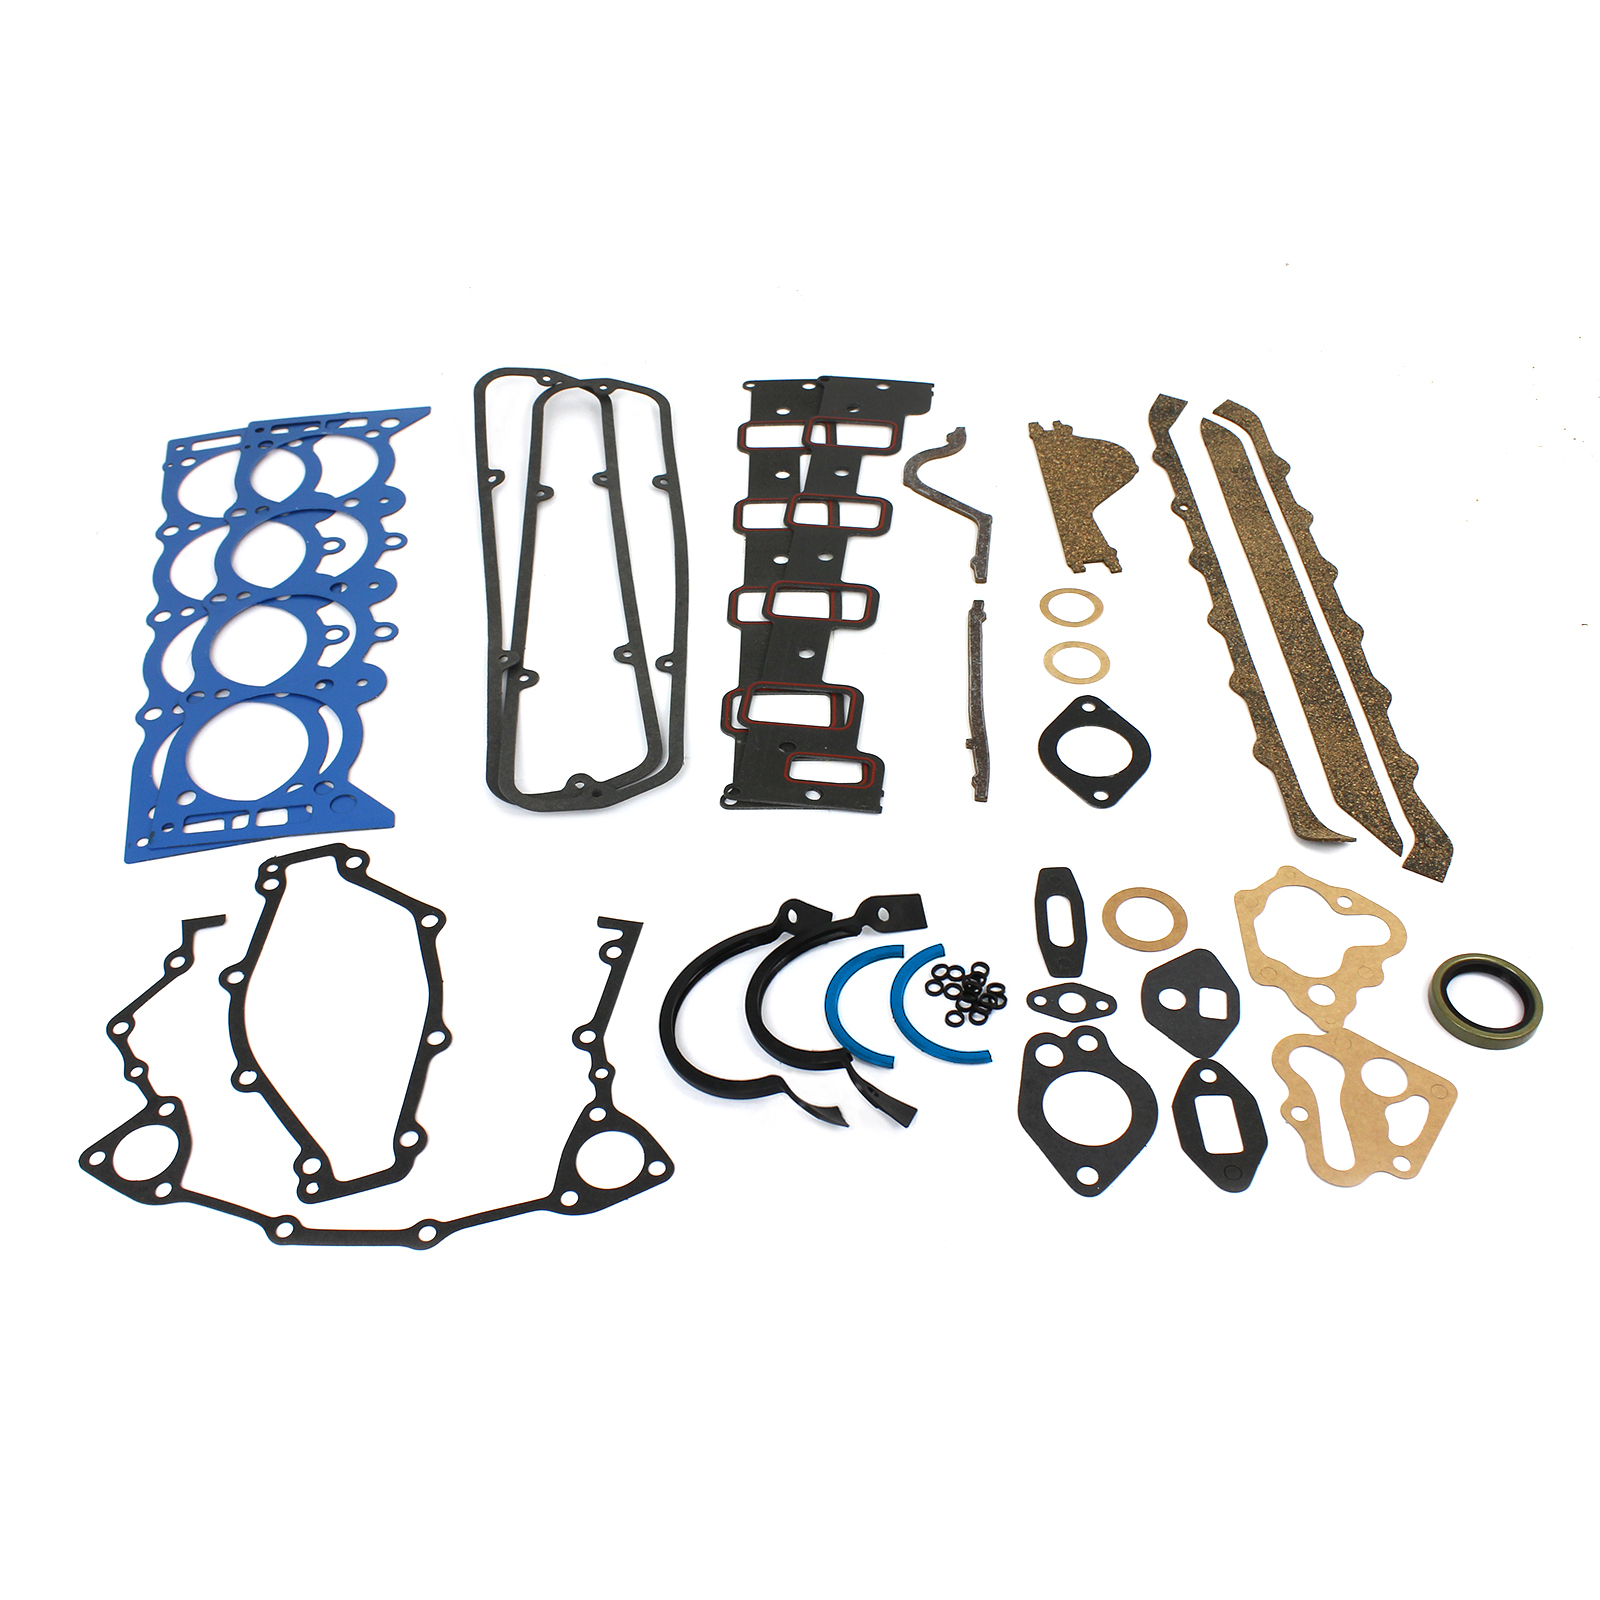 Holden-304-EFI-Full-Gasket-Set-NEO-Rms